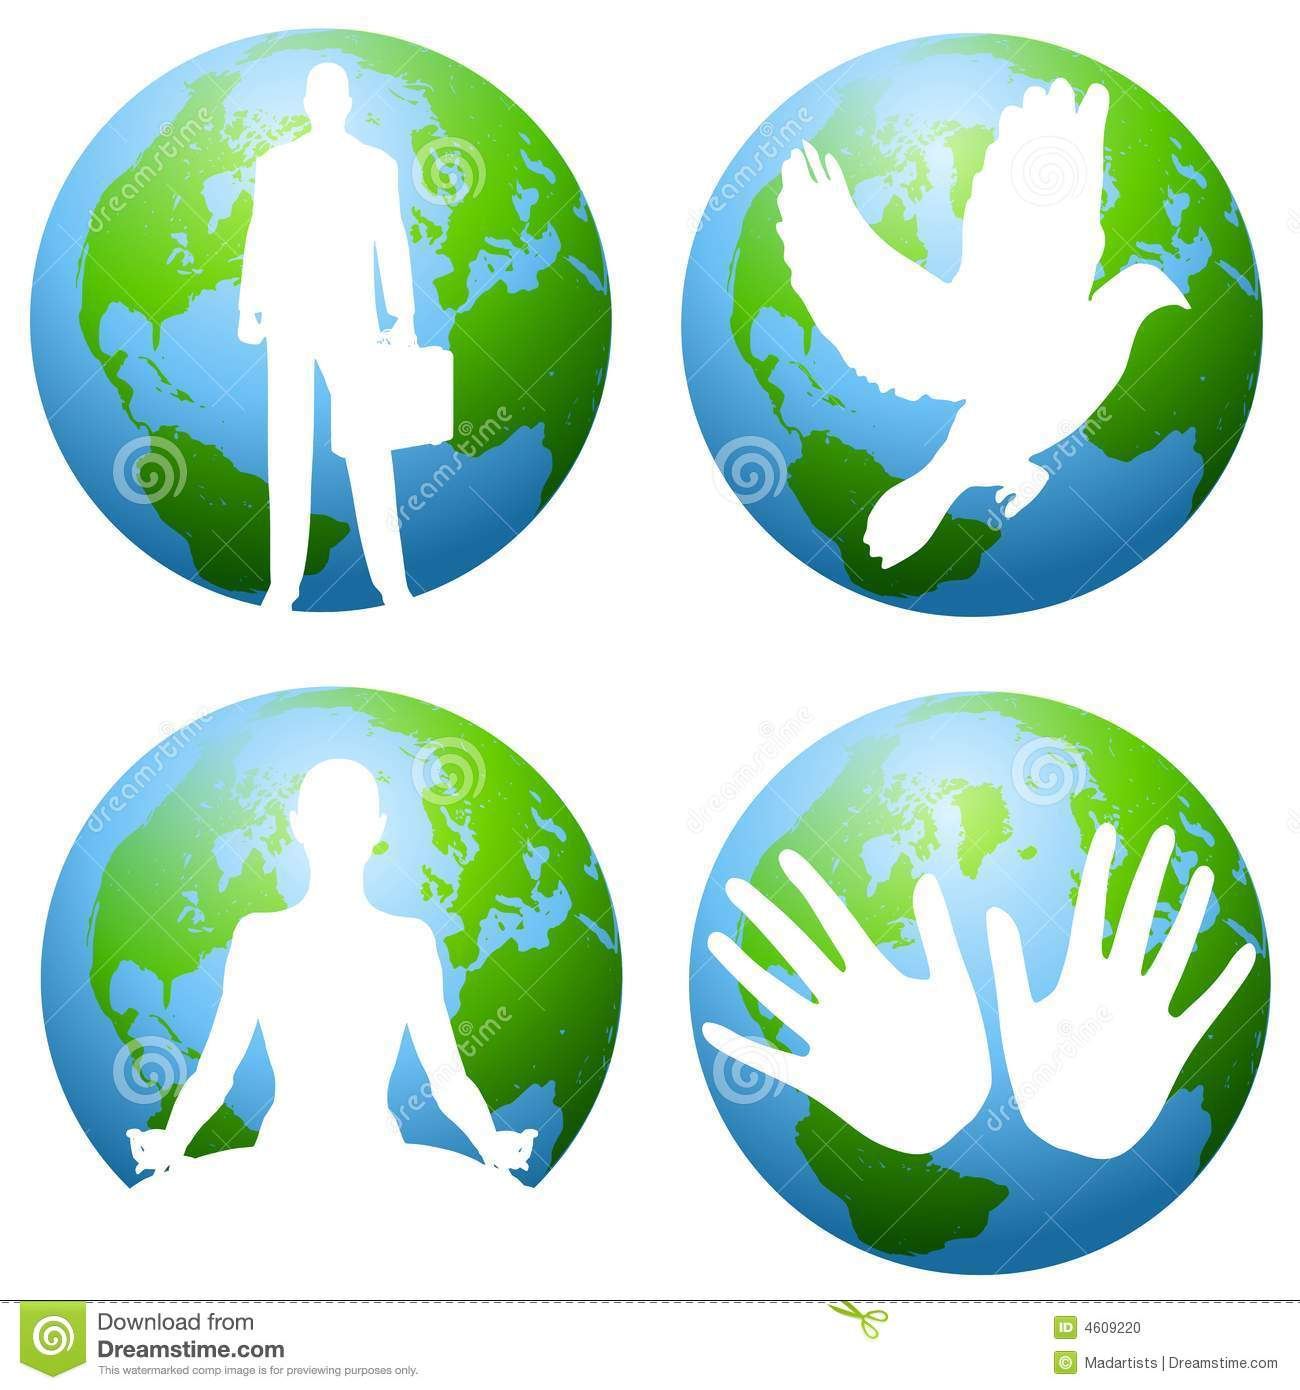 Factory clipart human environment interaction Clipart Free Environmental Images 20clipart